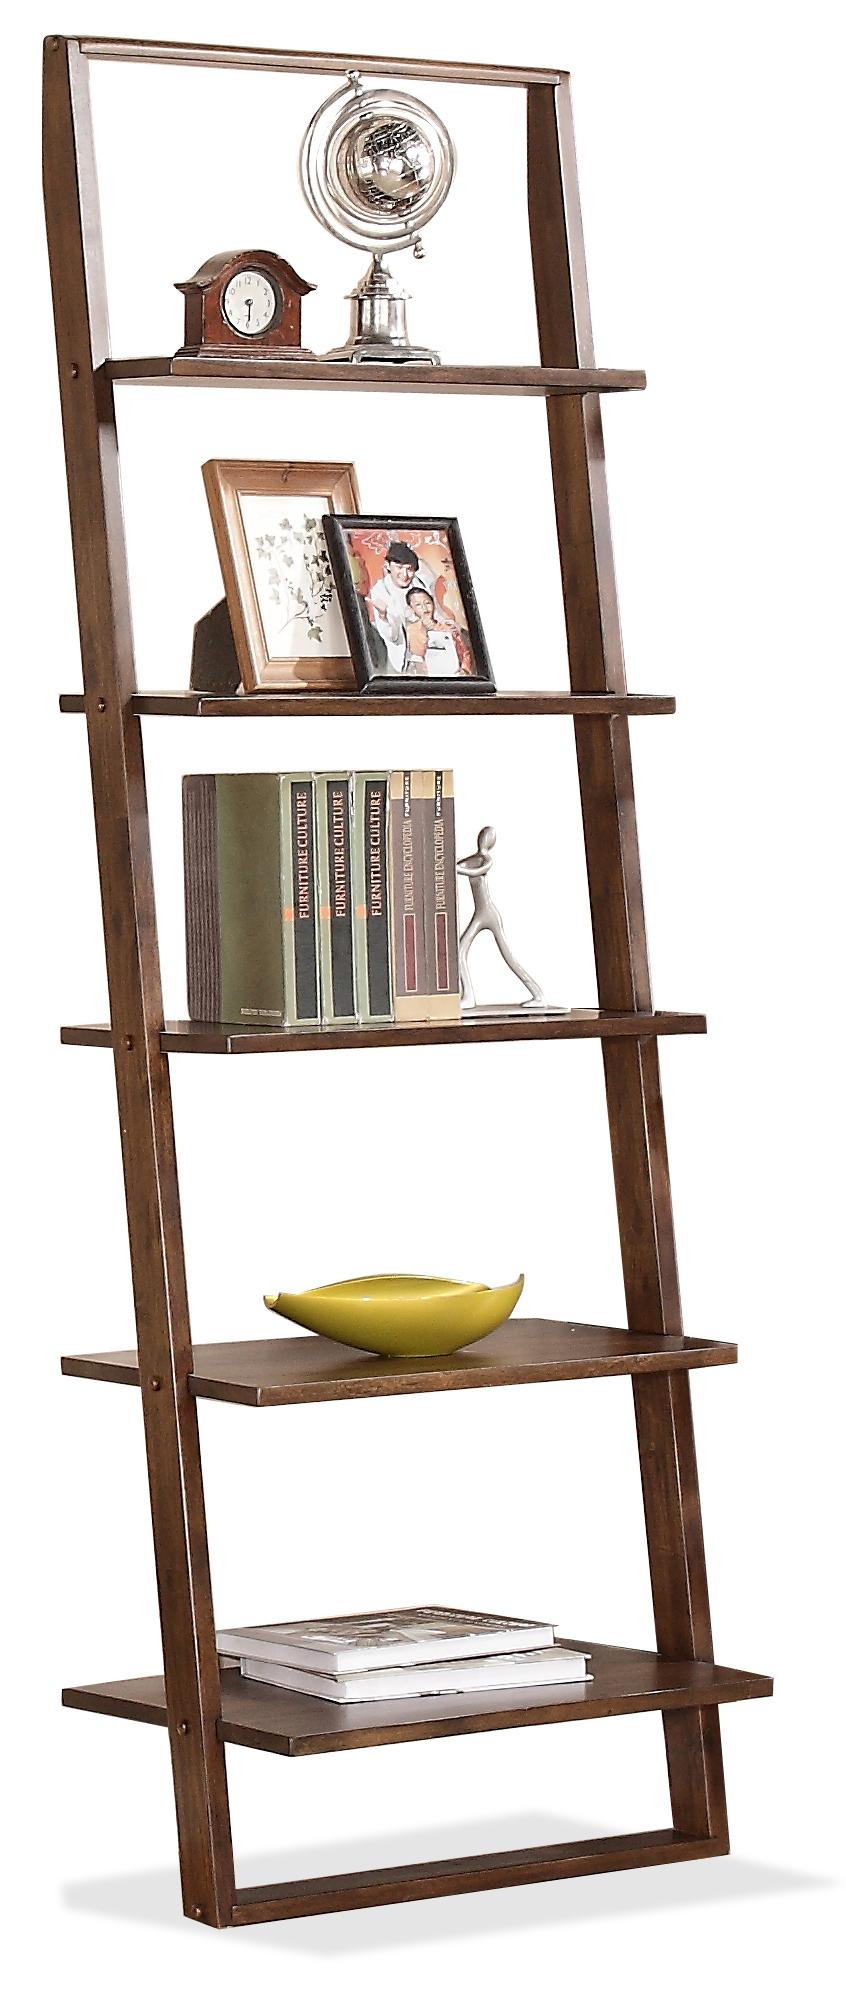 Riverside Furniture Lean Living Leaning Bookcase - Item Number: 27837